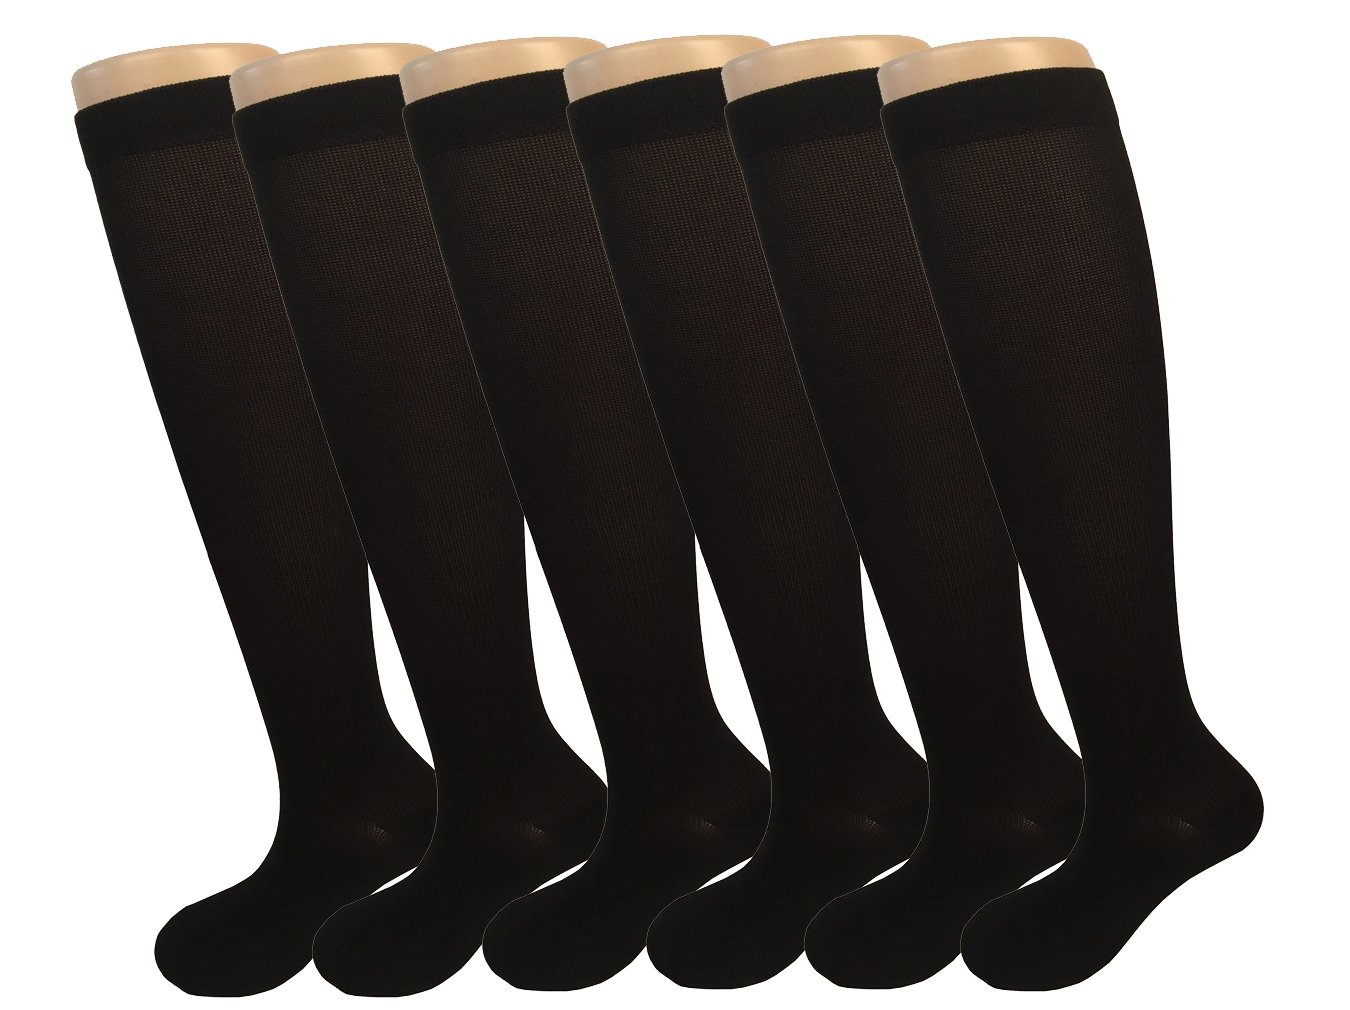 6 Pairs Graduated Compression Socks For Women Running Hiking Bike Travel Socks 8-15mmHg (black) -L/XL